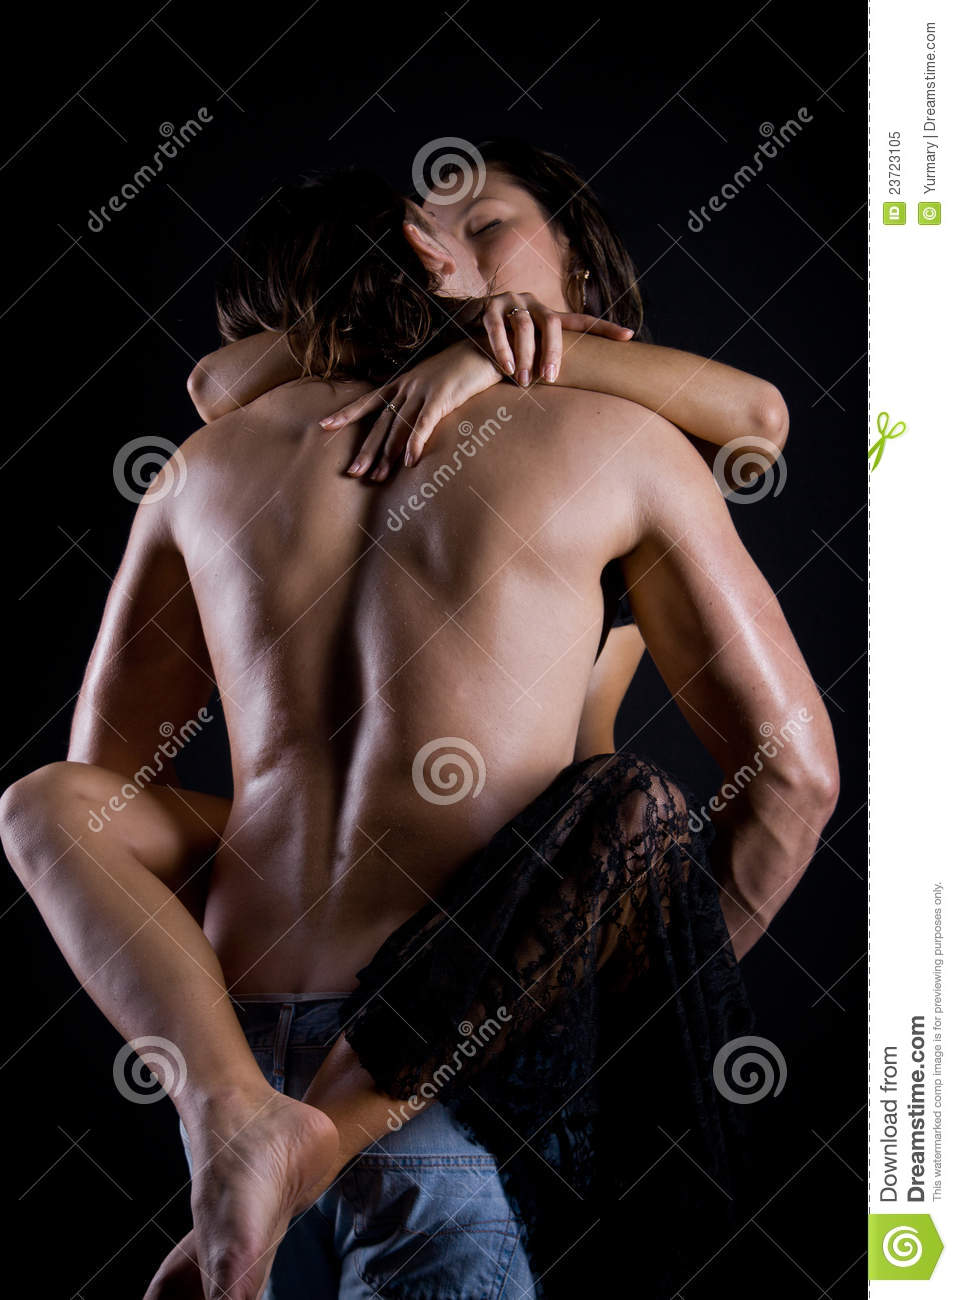 man behind woman position